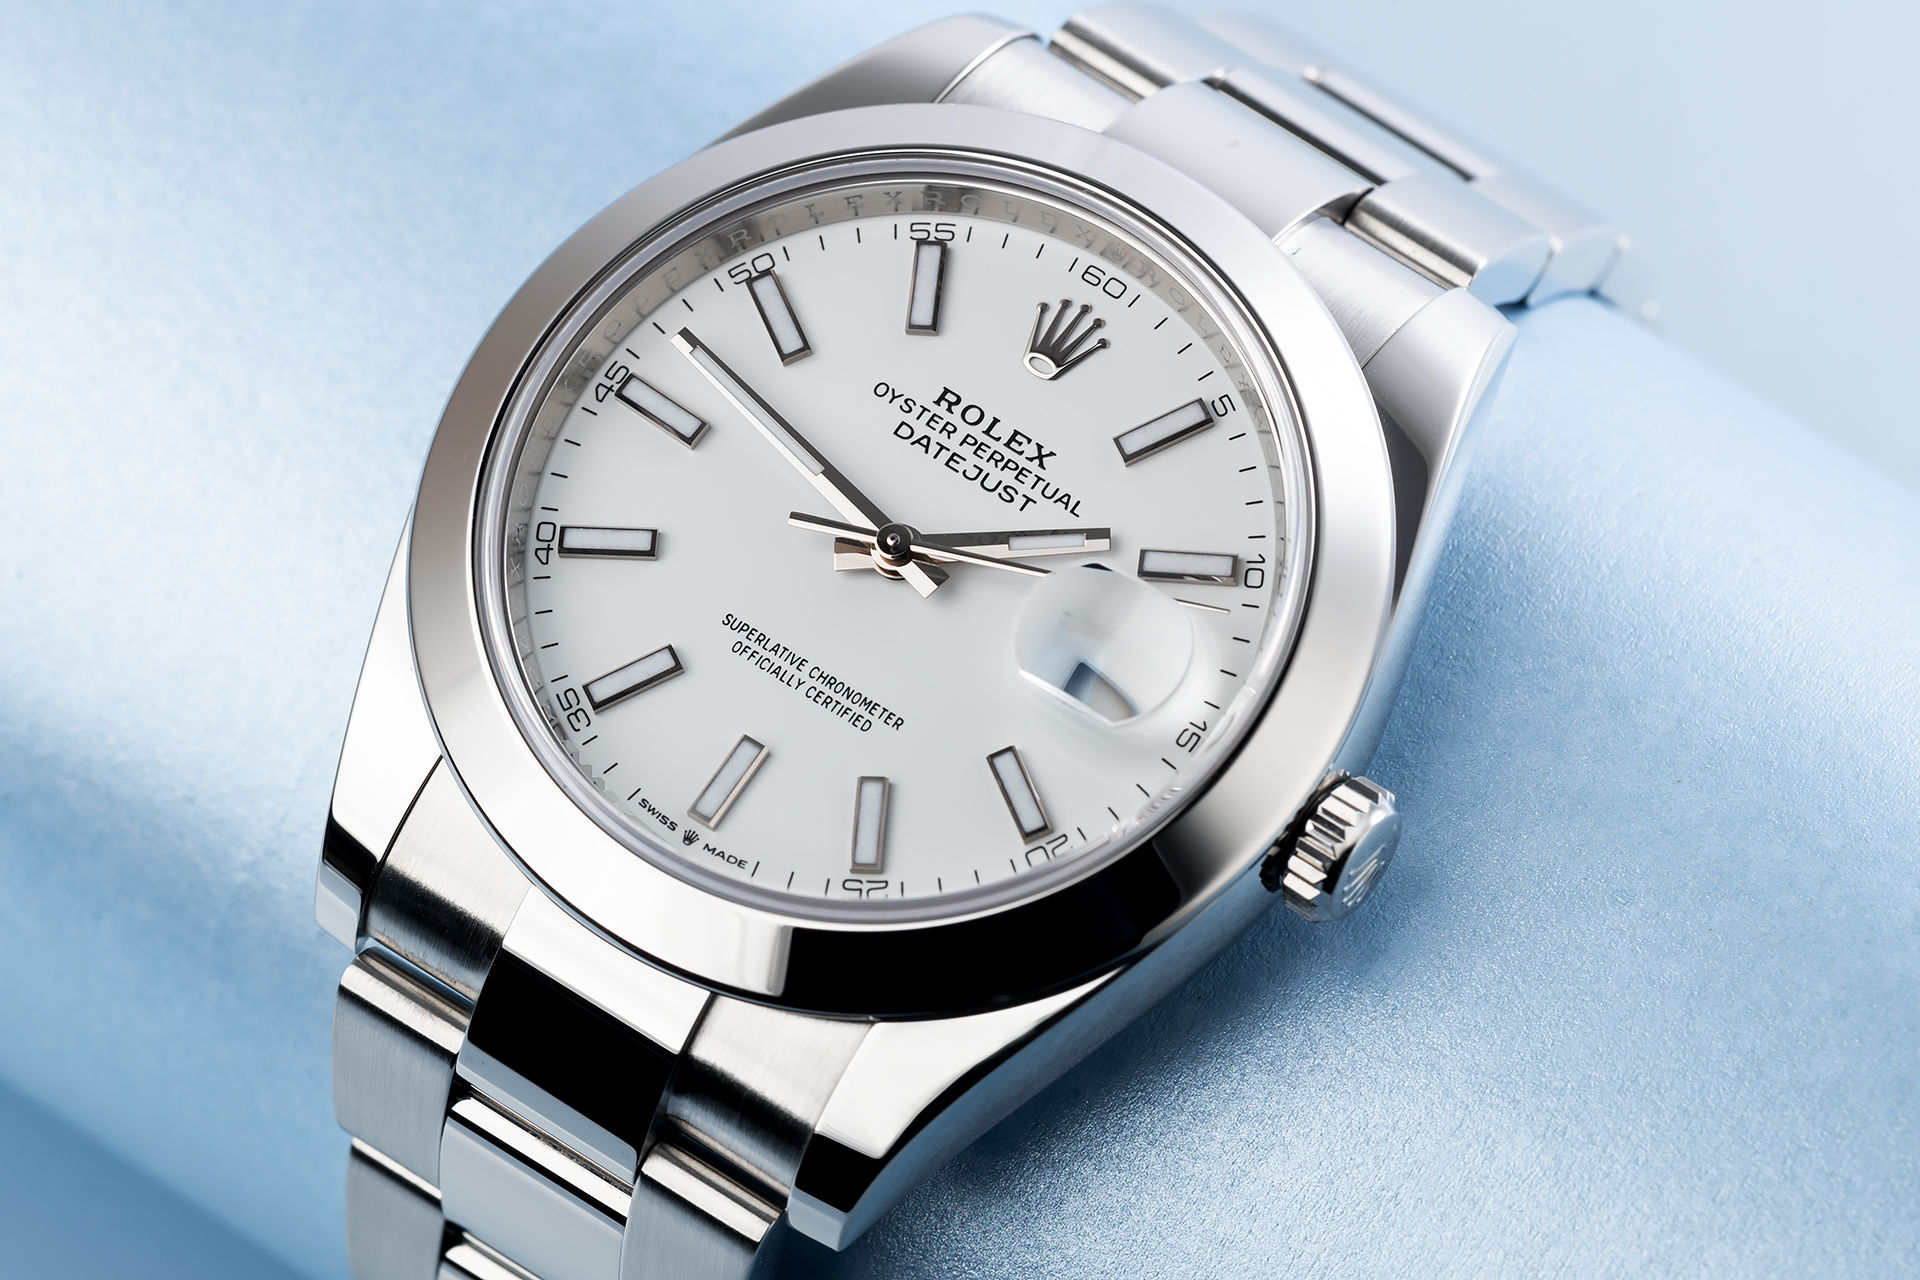 ref 126300 | Under Warranty to 2024 | Rolex Datejust 41